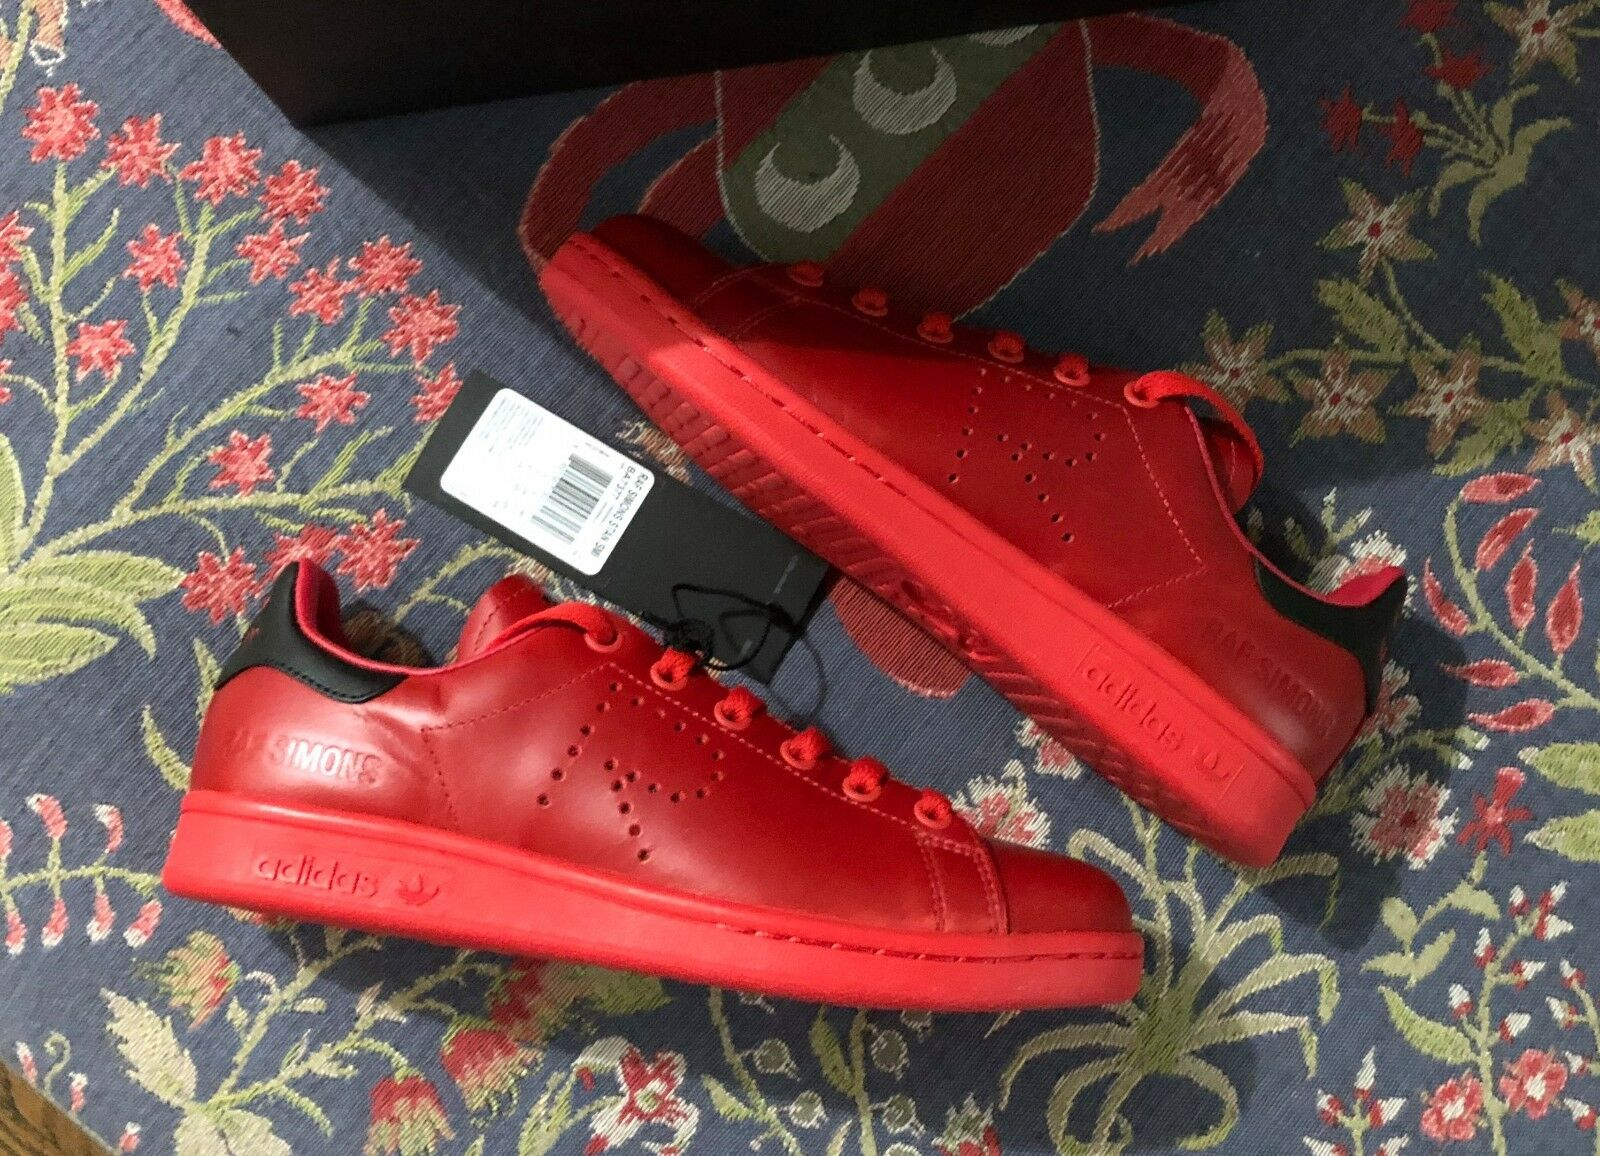 Adidas x Raf Simons Stan Smith Red Black Leather Sneakers Size 4.5 New